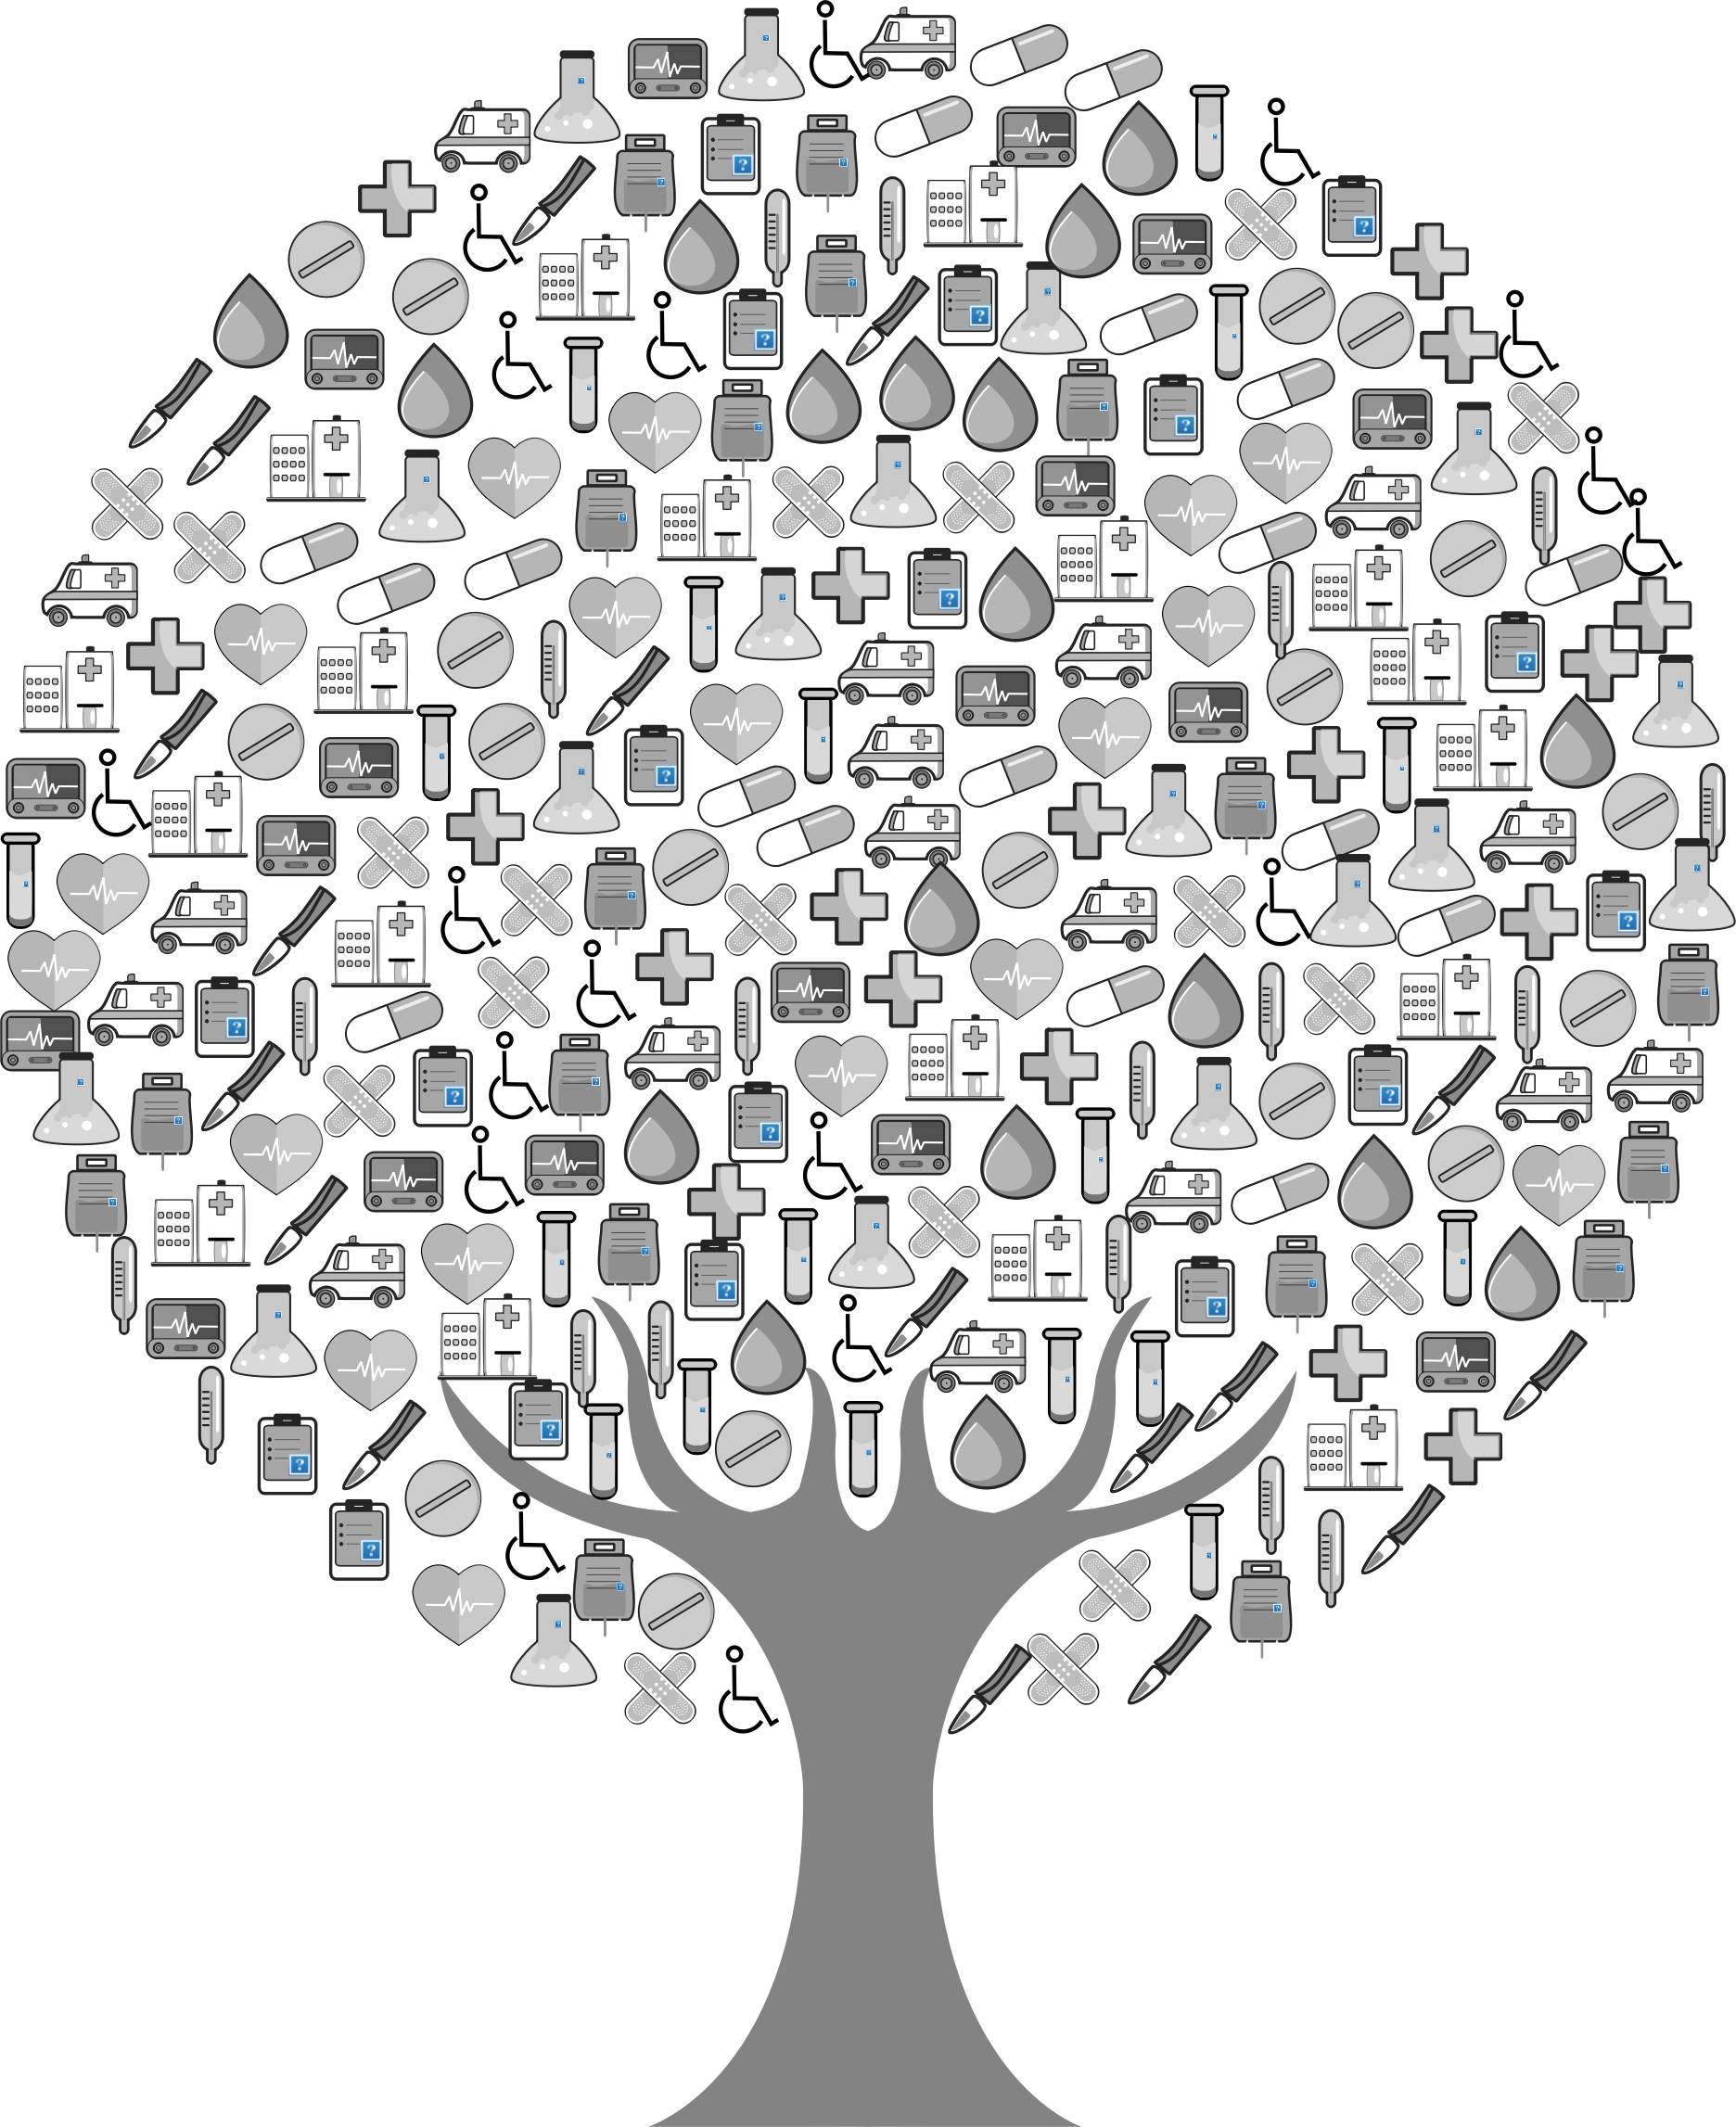 Medical clipart medical test. Icons tree grayscale big